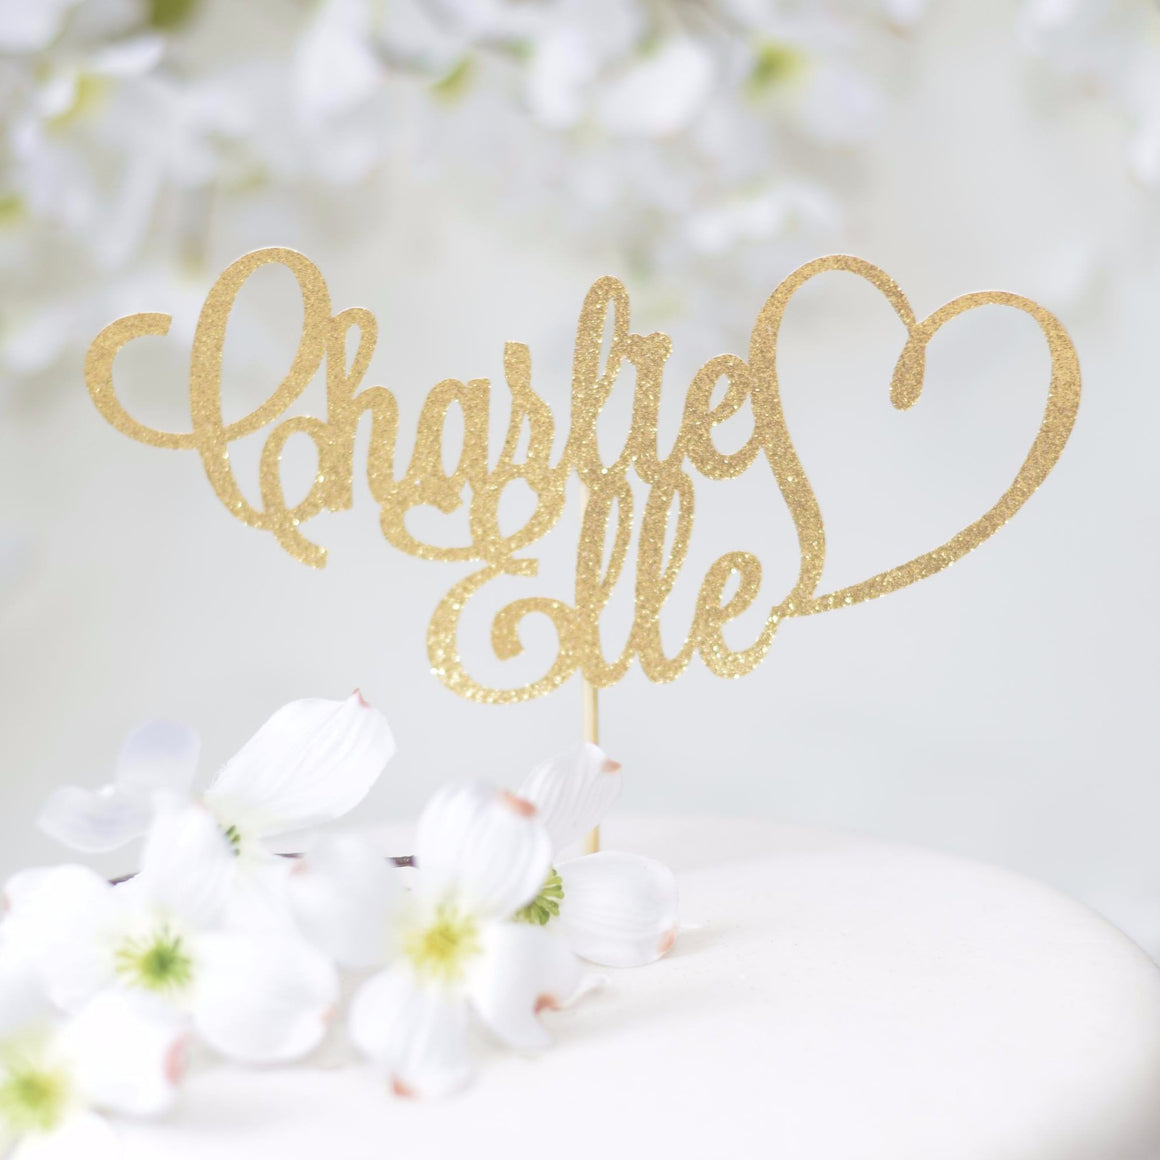 Charlie Elle heart glitter sparkle cake topper on white floral cake